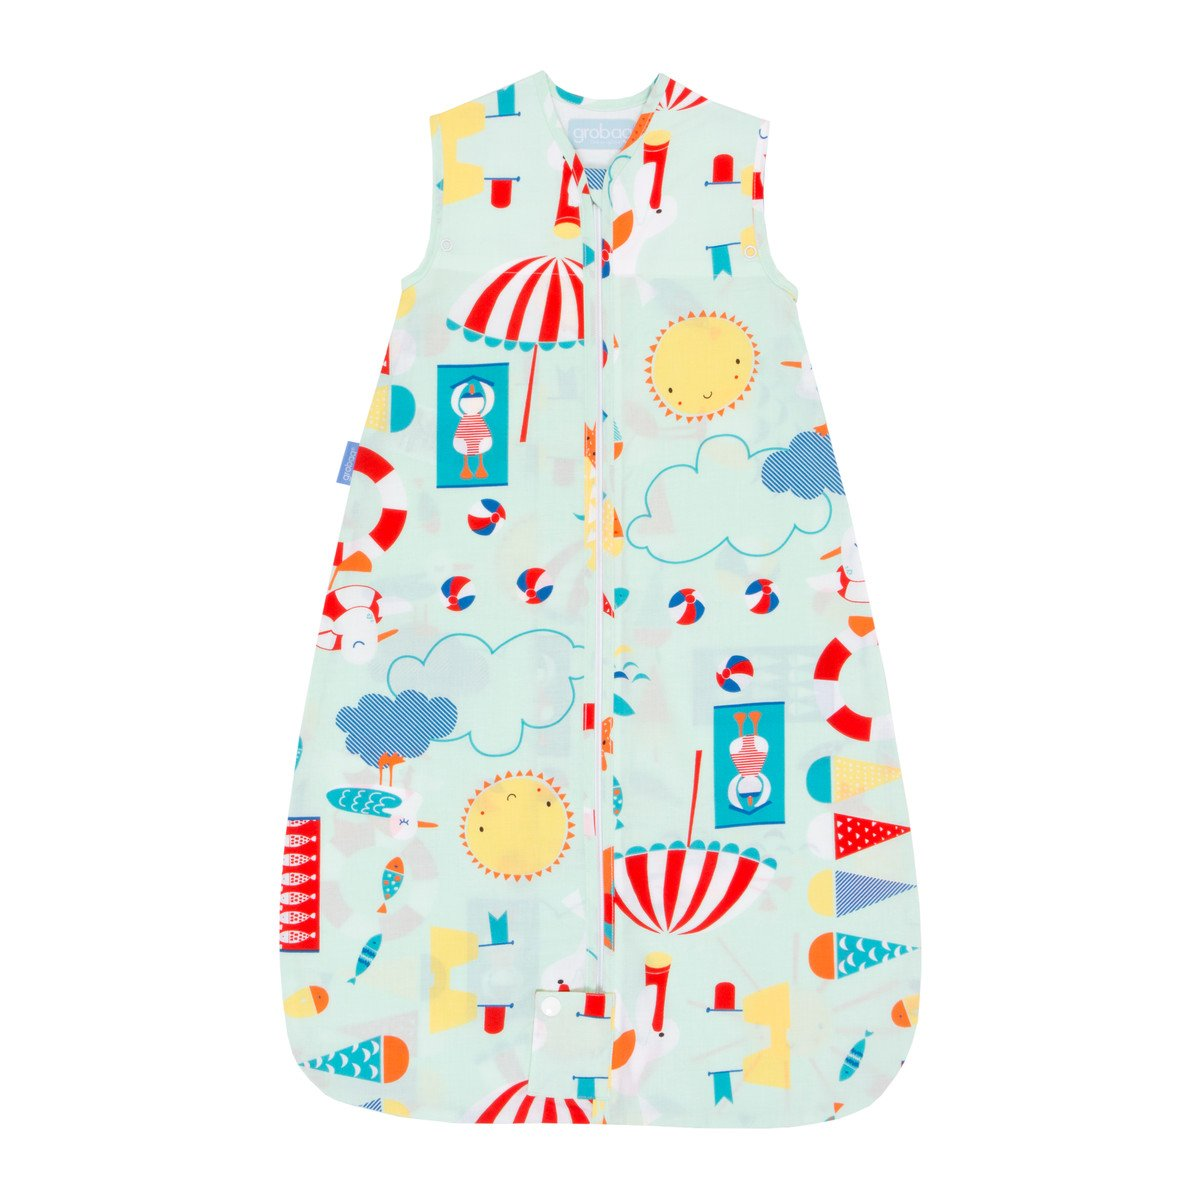 Anorak Grobag Rolling Hills Bag (2.5 tog, 18 - 36 Months) Anorak by Grobag AAA3160